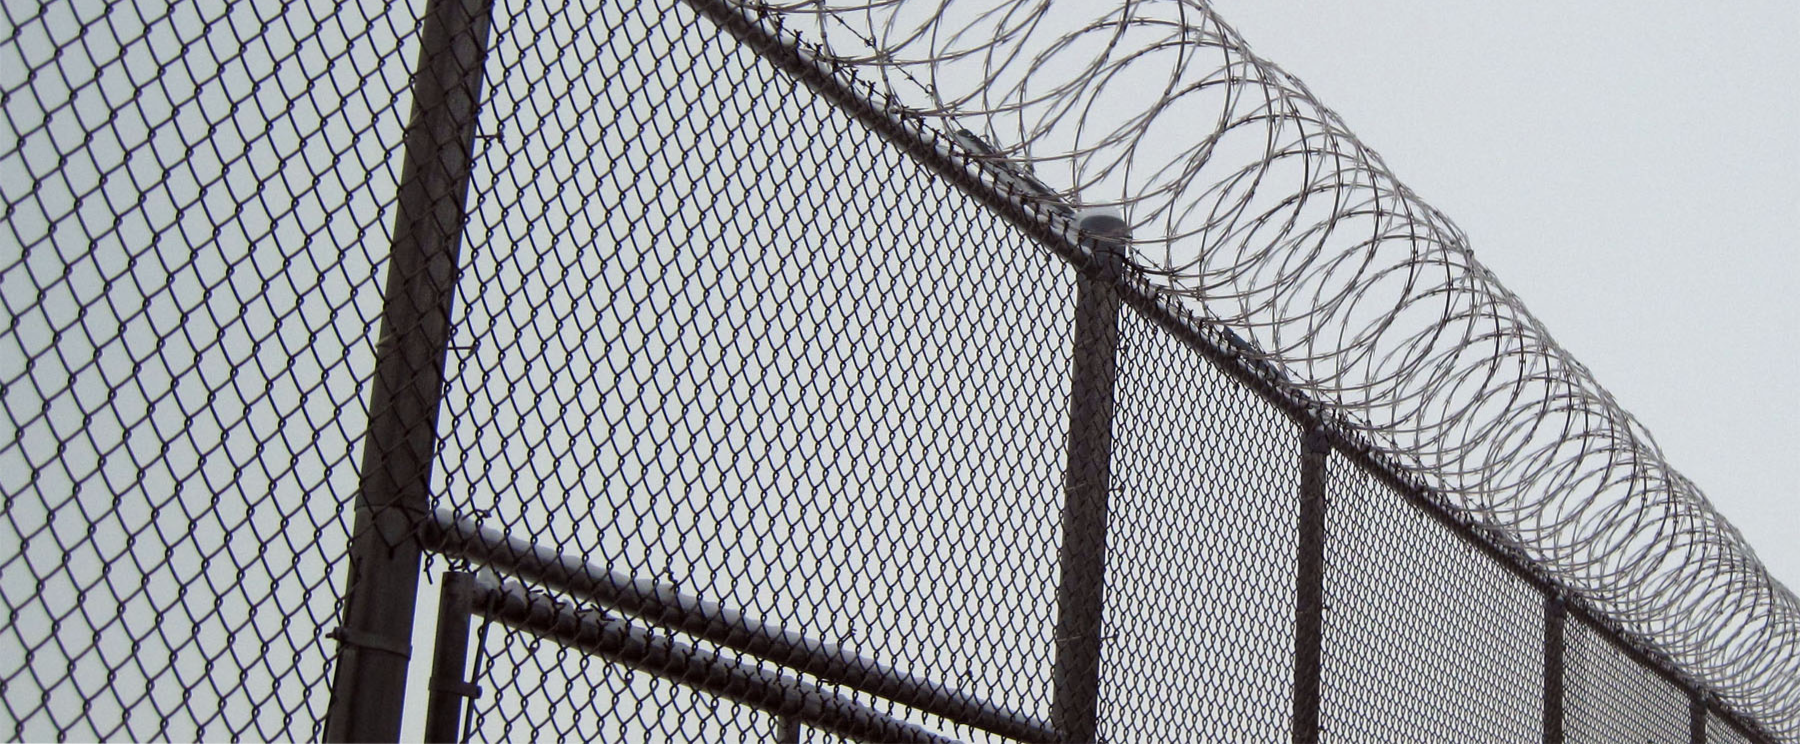 'In there, that's a lot of money:' Advocates push to get inmates stimulus checks after federal court ruling